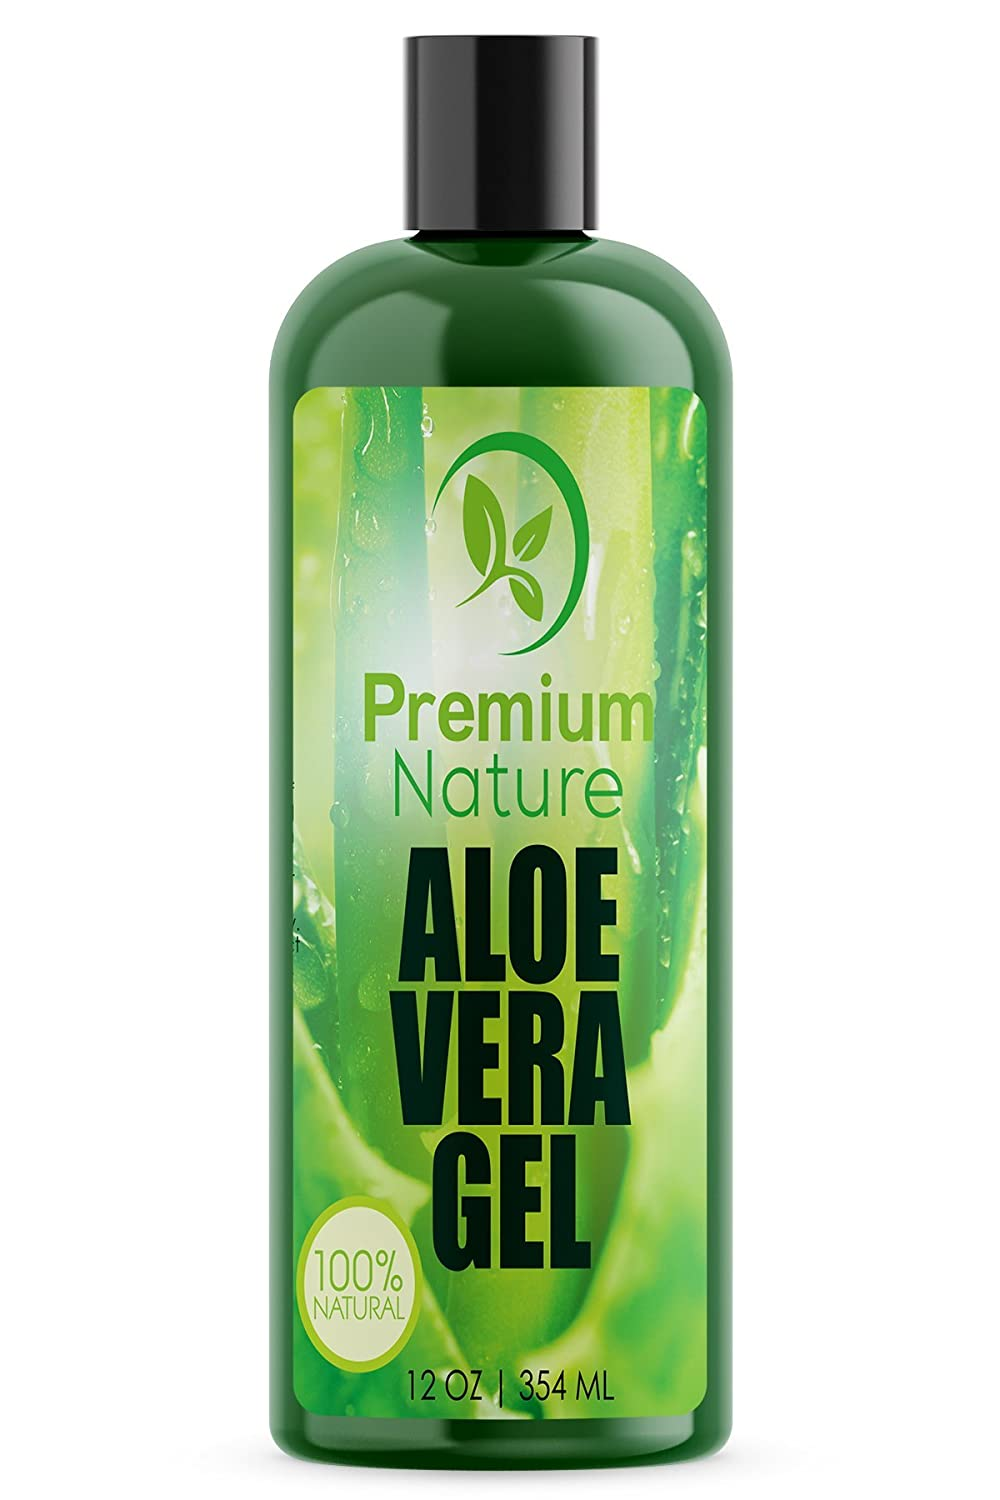 Aloe Vera Gel for Face Body & Hair - 354 ml Pure & Natural Soothes Eczema After Sun Skin Care - Bug or Insects Bites Razor Bumps and Acne Premium Nature B01G5UWHUO